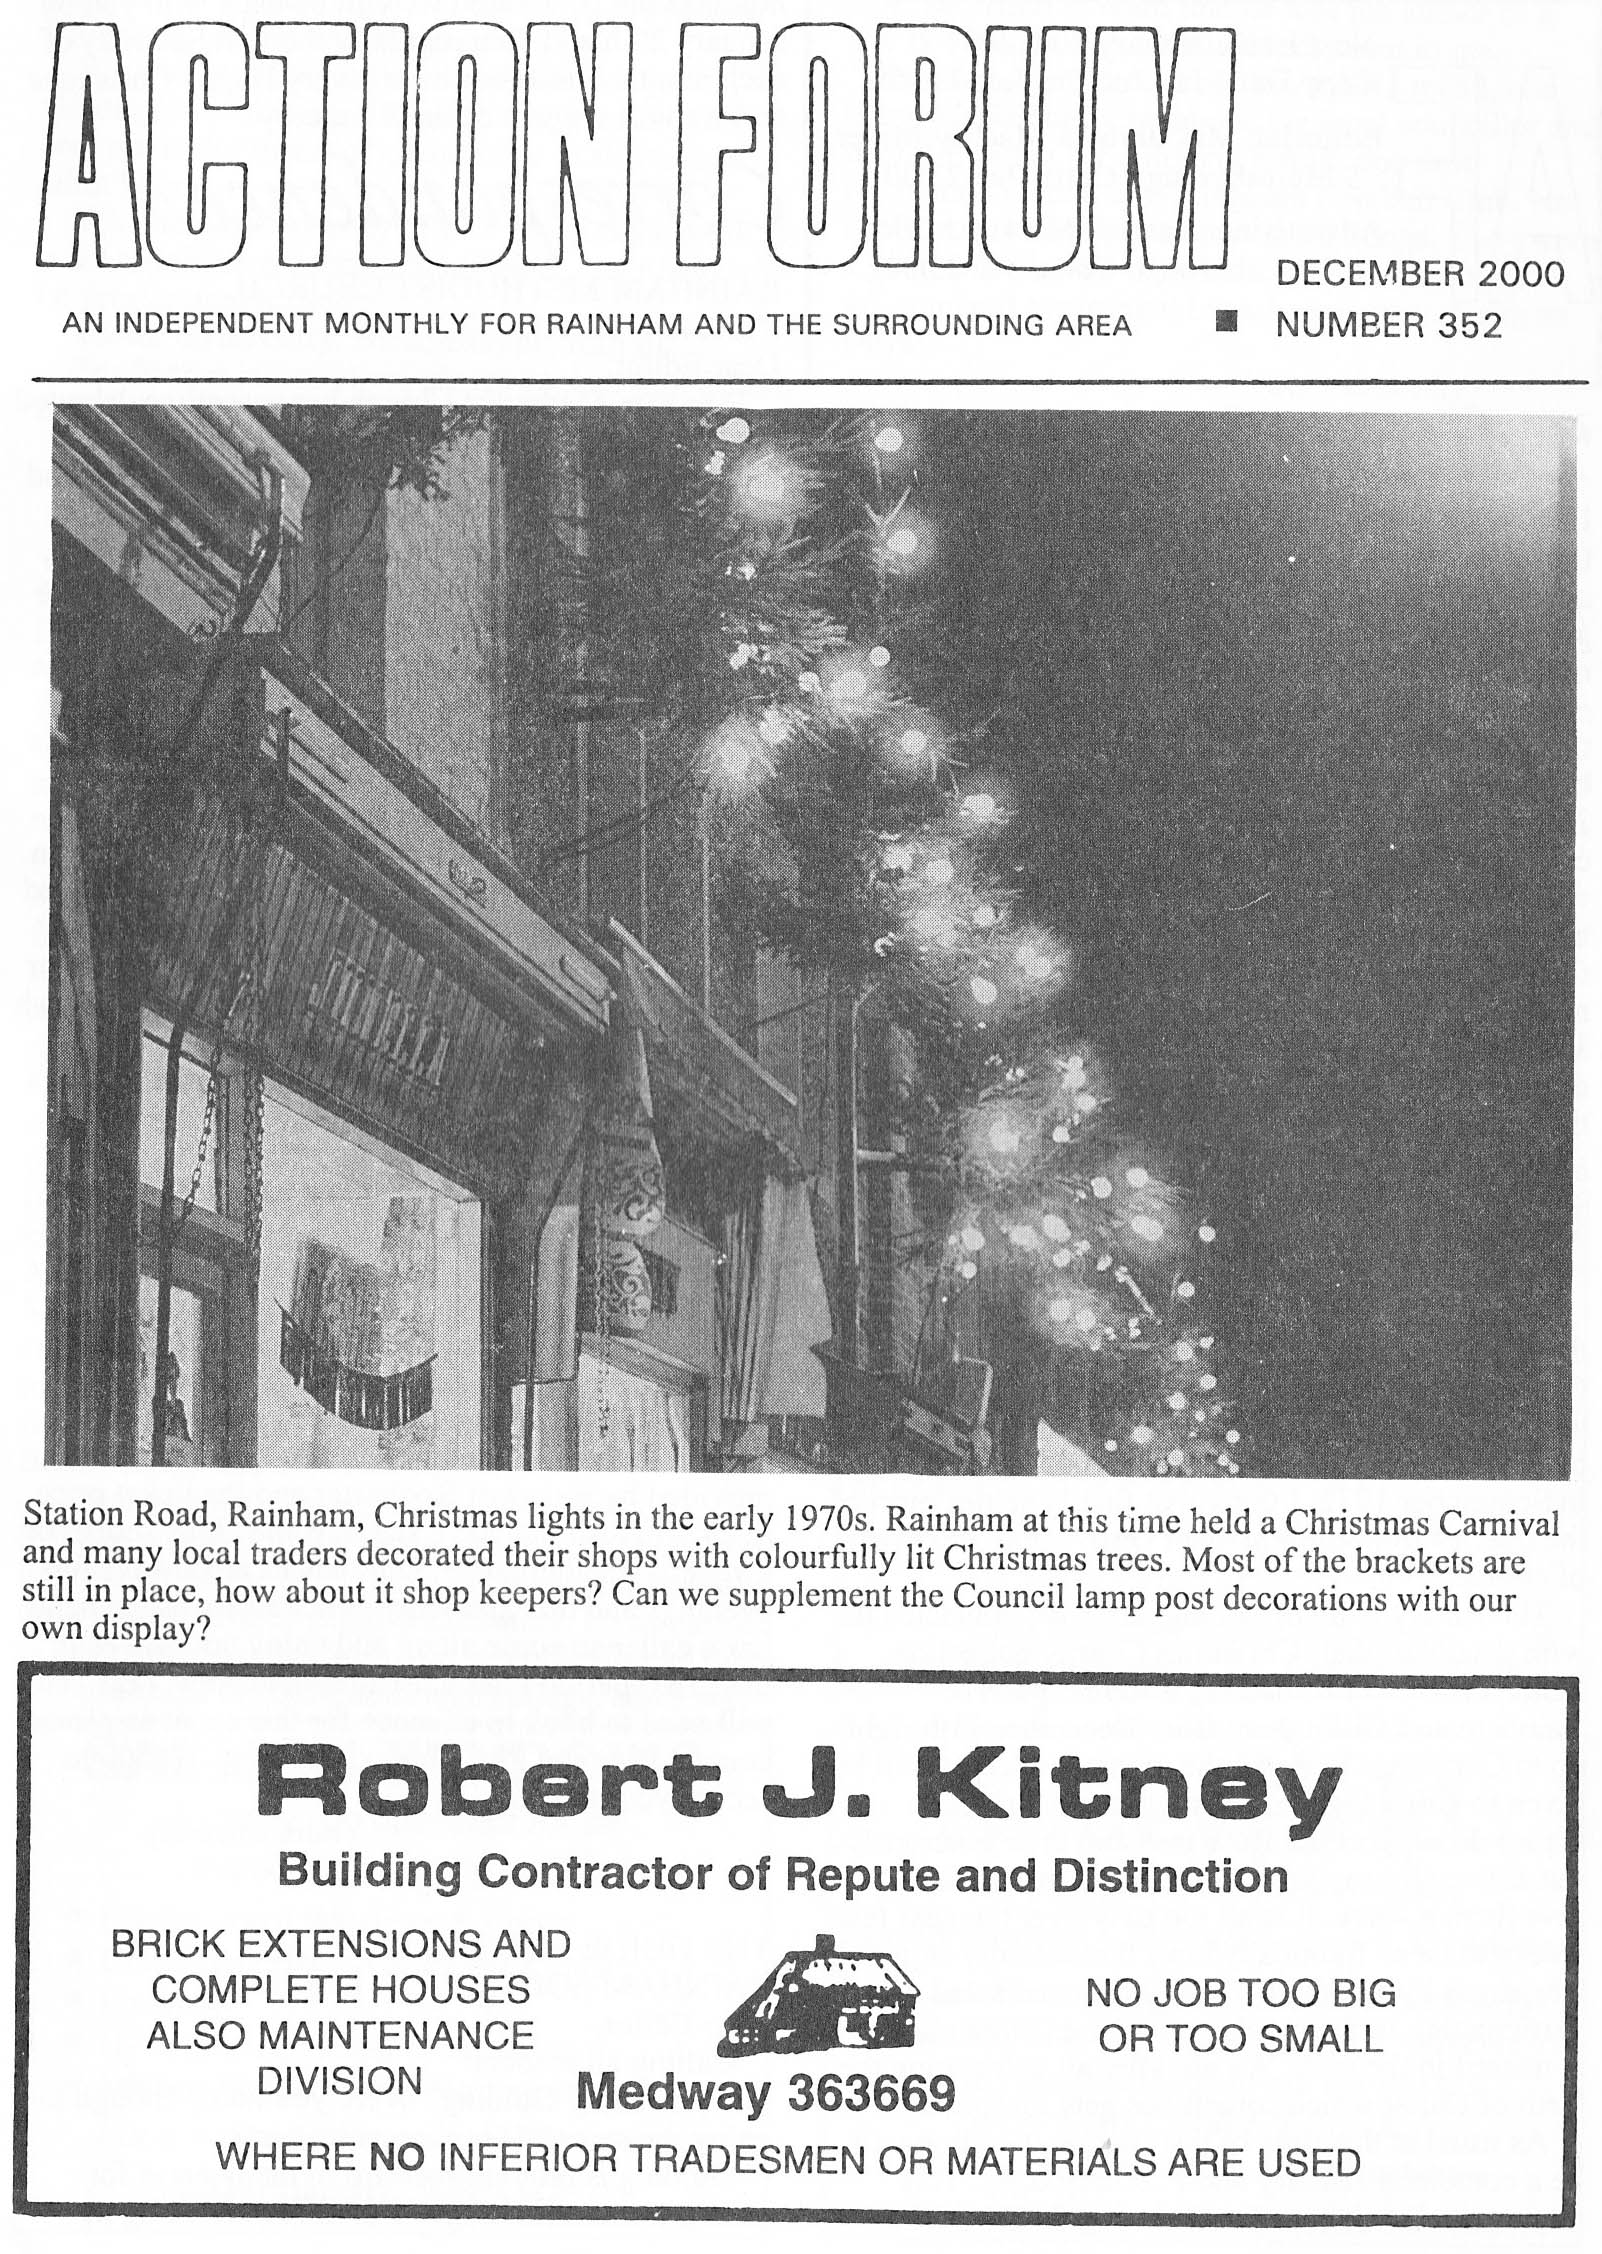 Cover photo of Rainham Christmas lights in 1970s